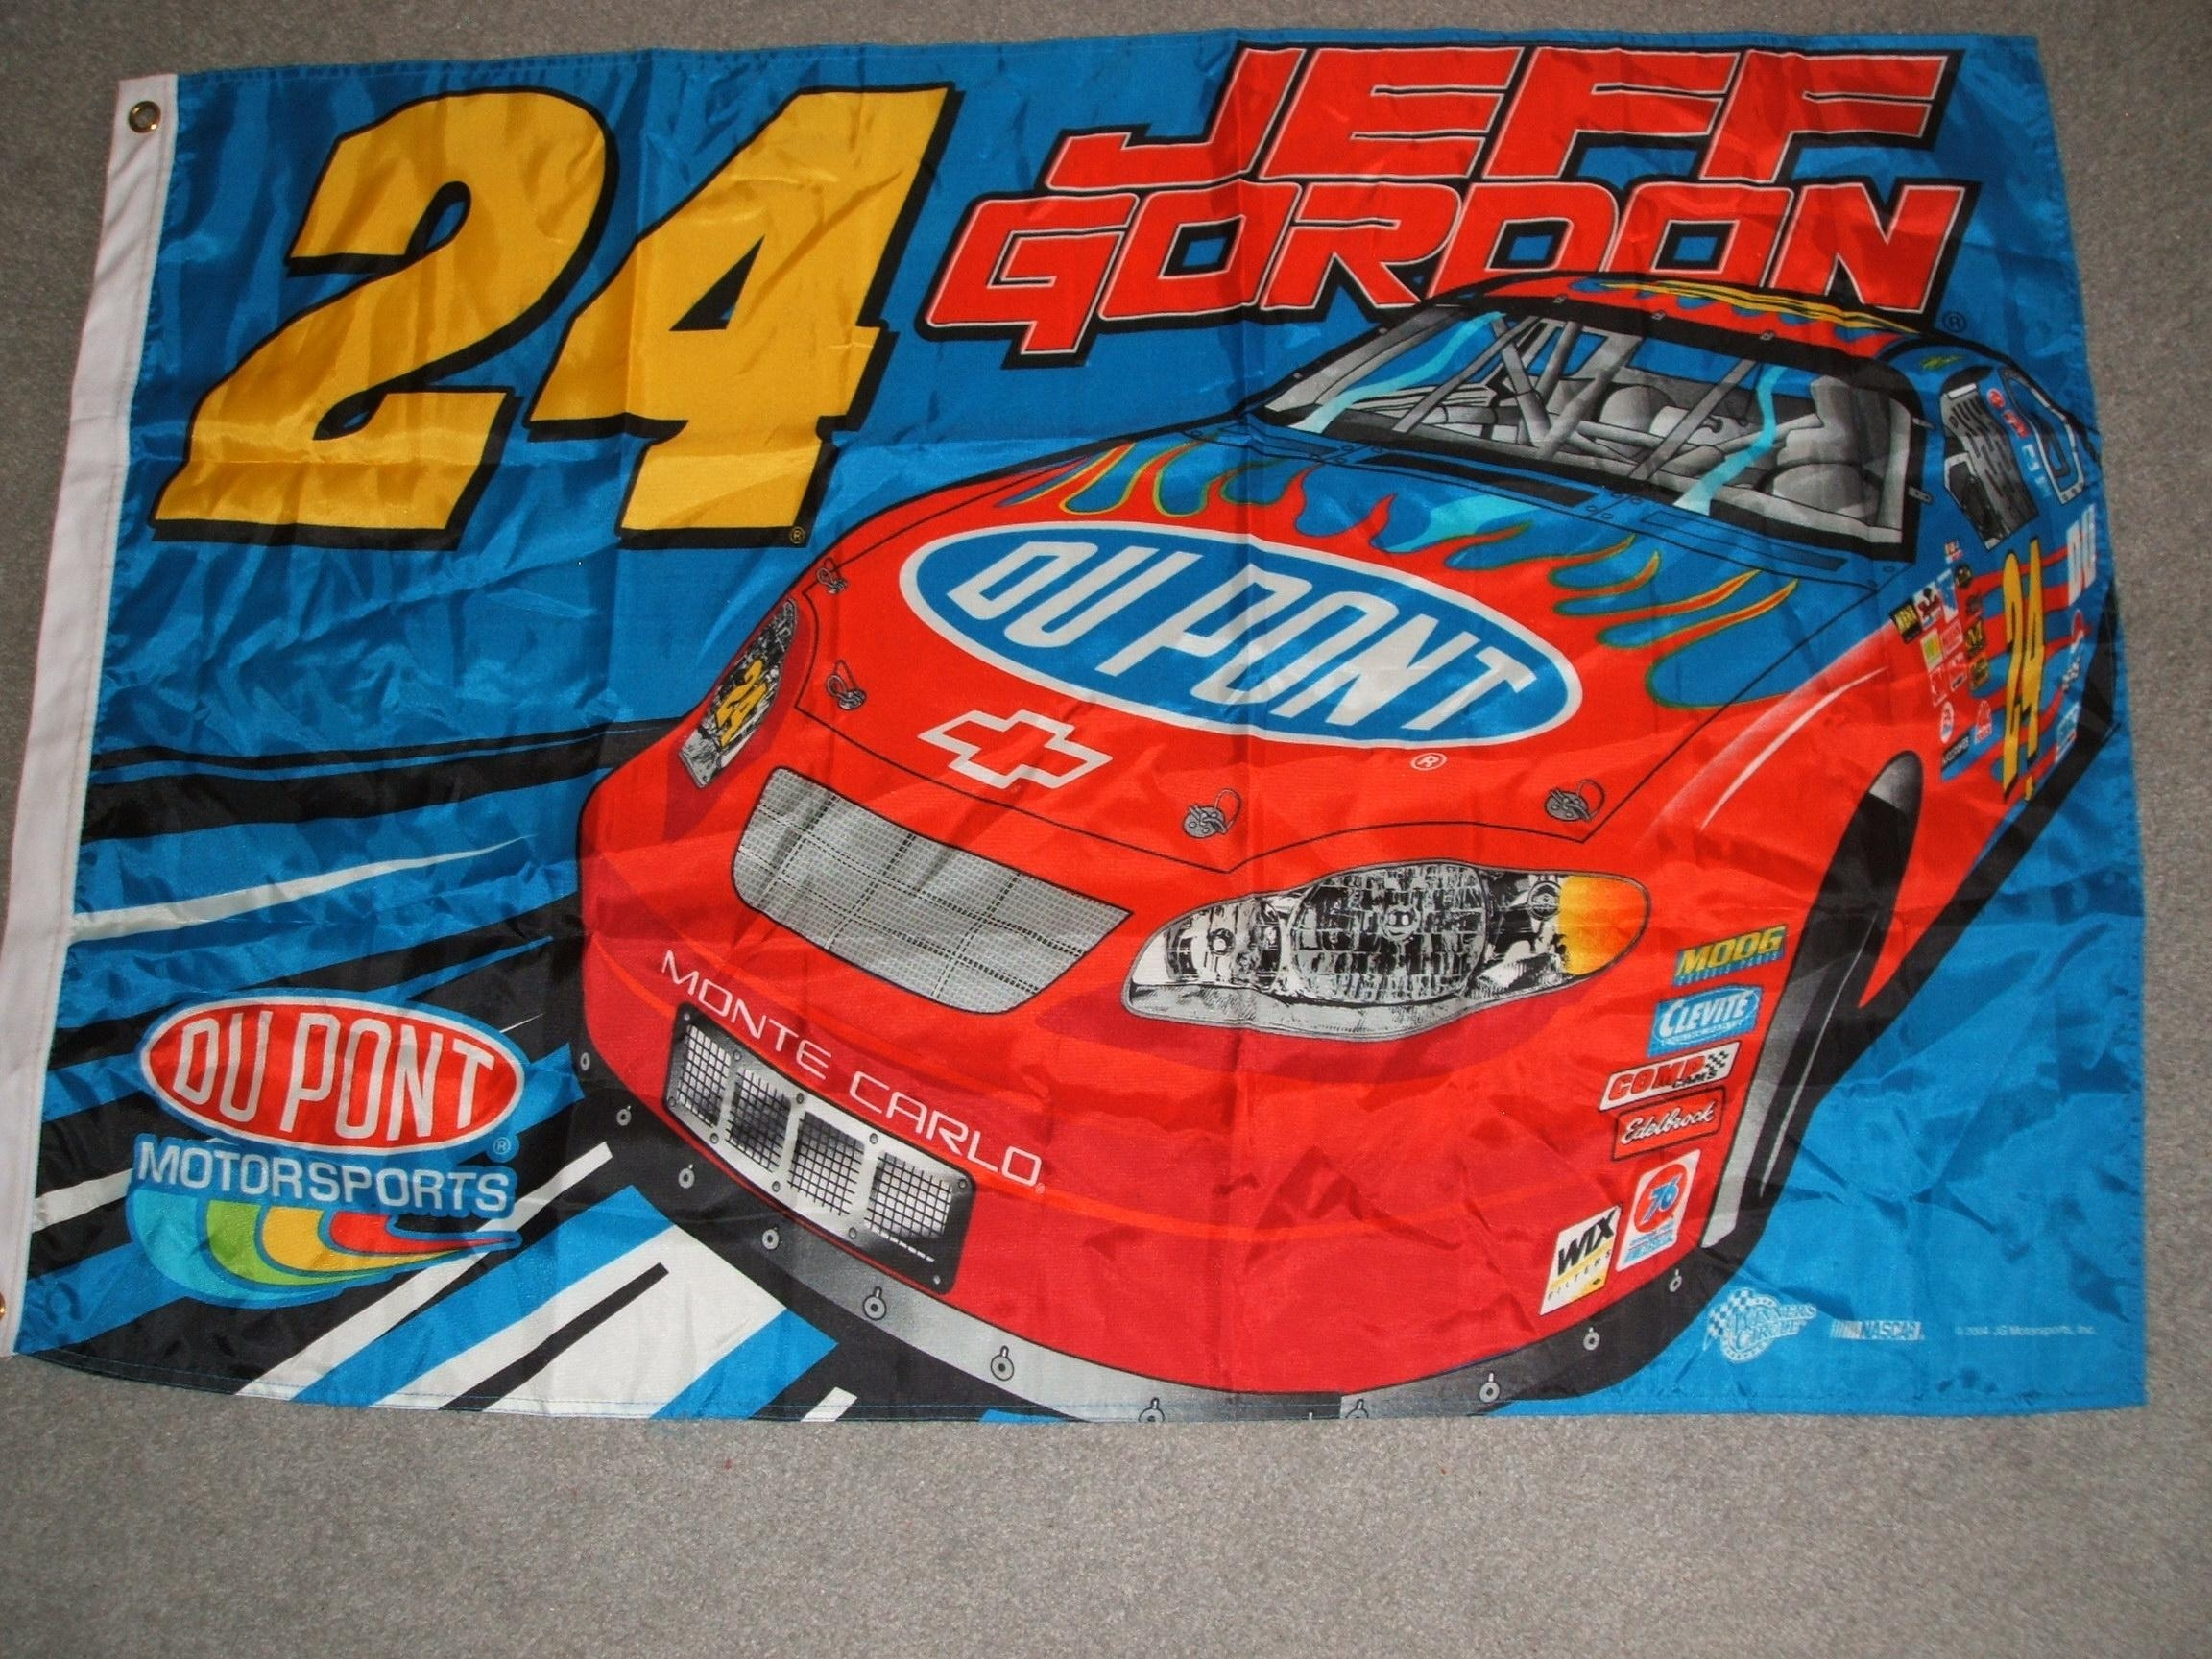 jeff gordon dupont outdoor - photo #7